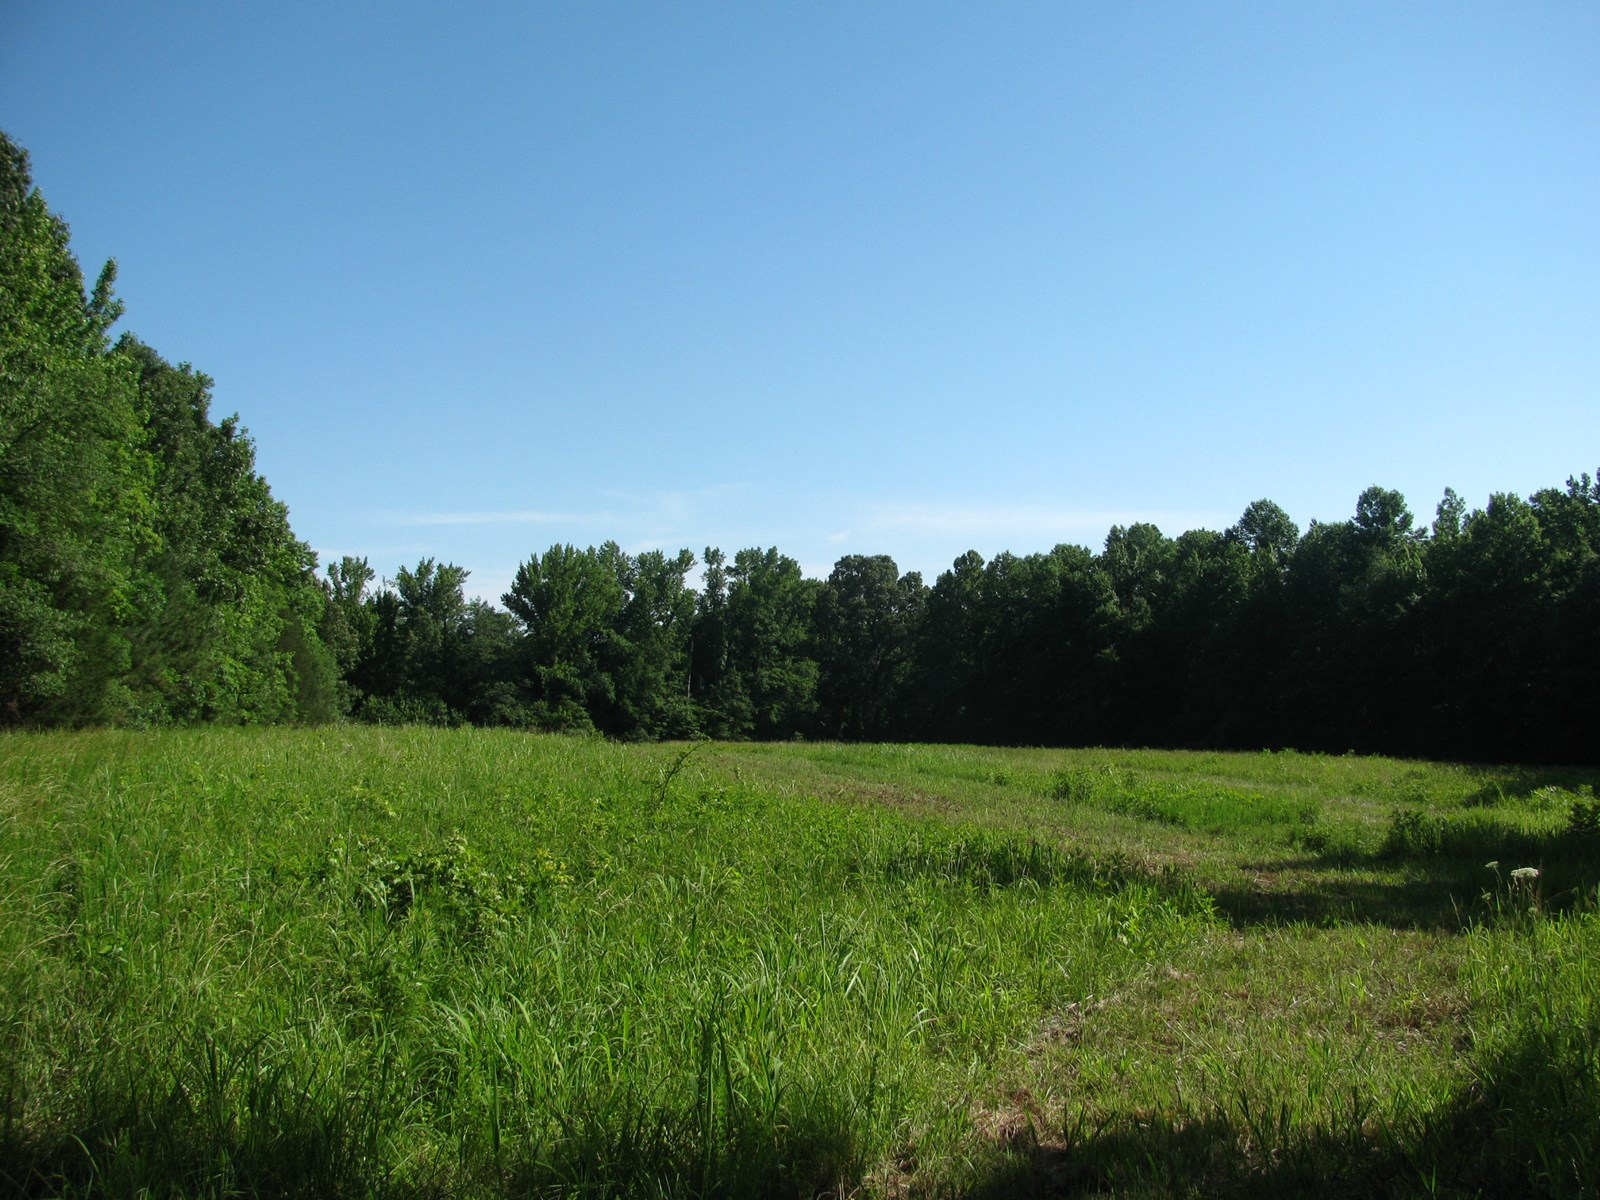 LAND IN HARDIN COUNTY, TN FOR SALE, TIMBER & OPEN